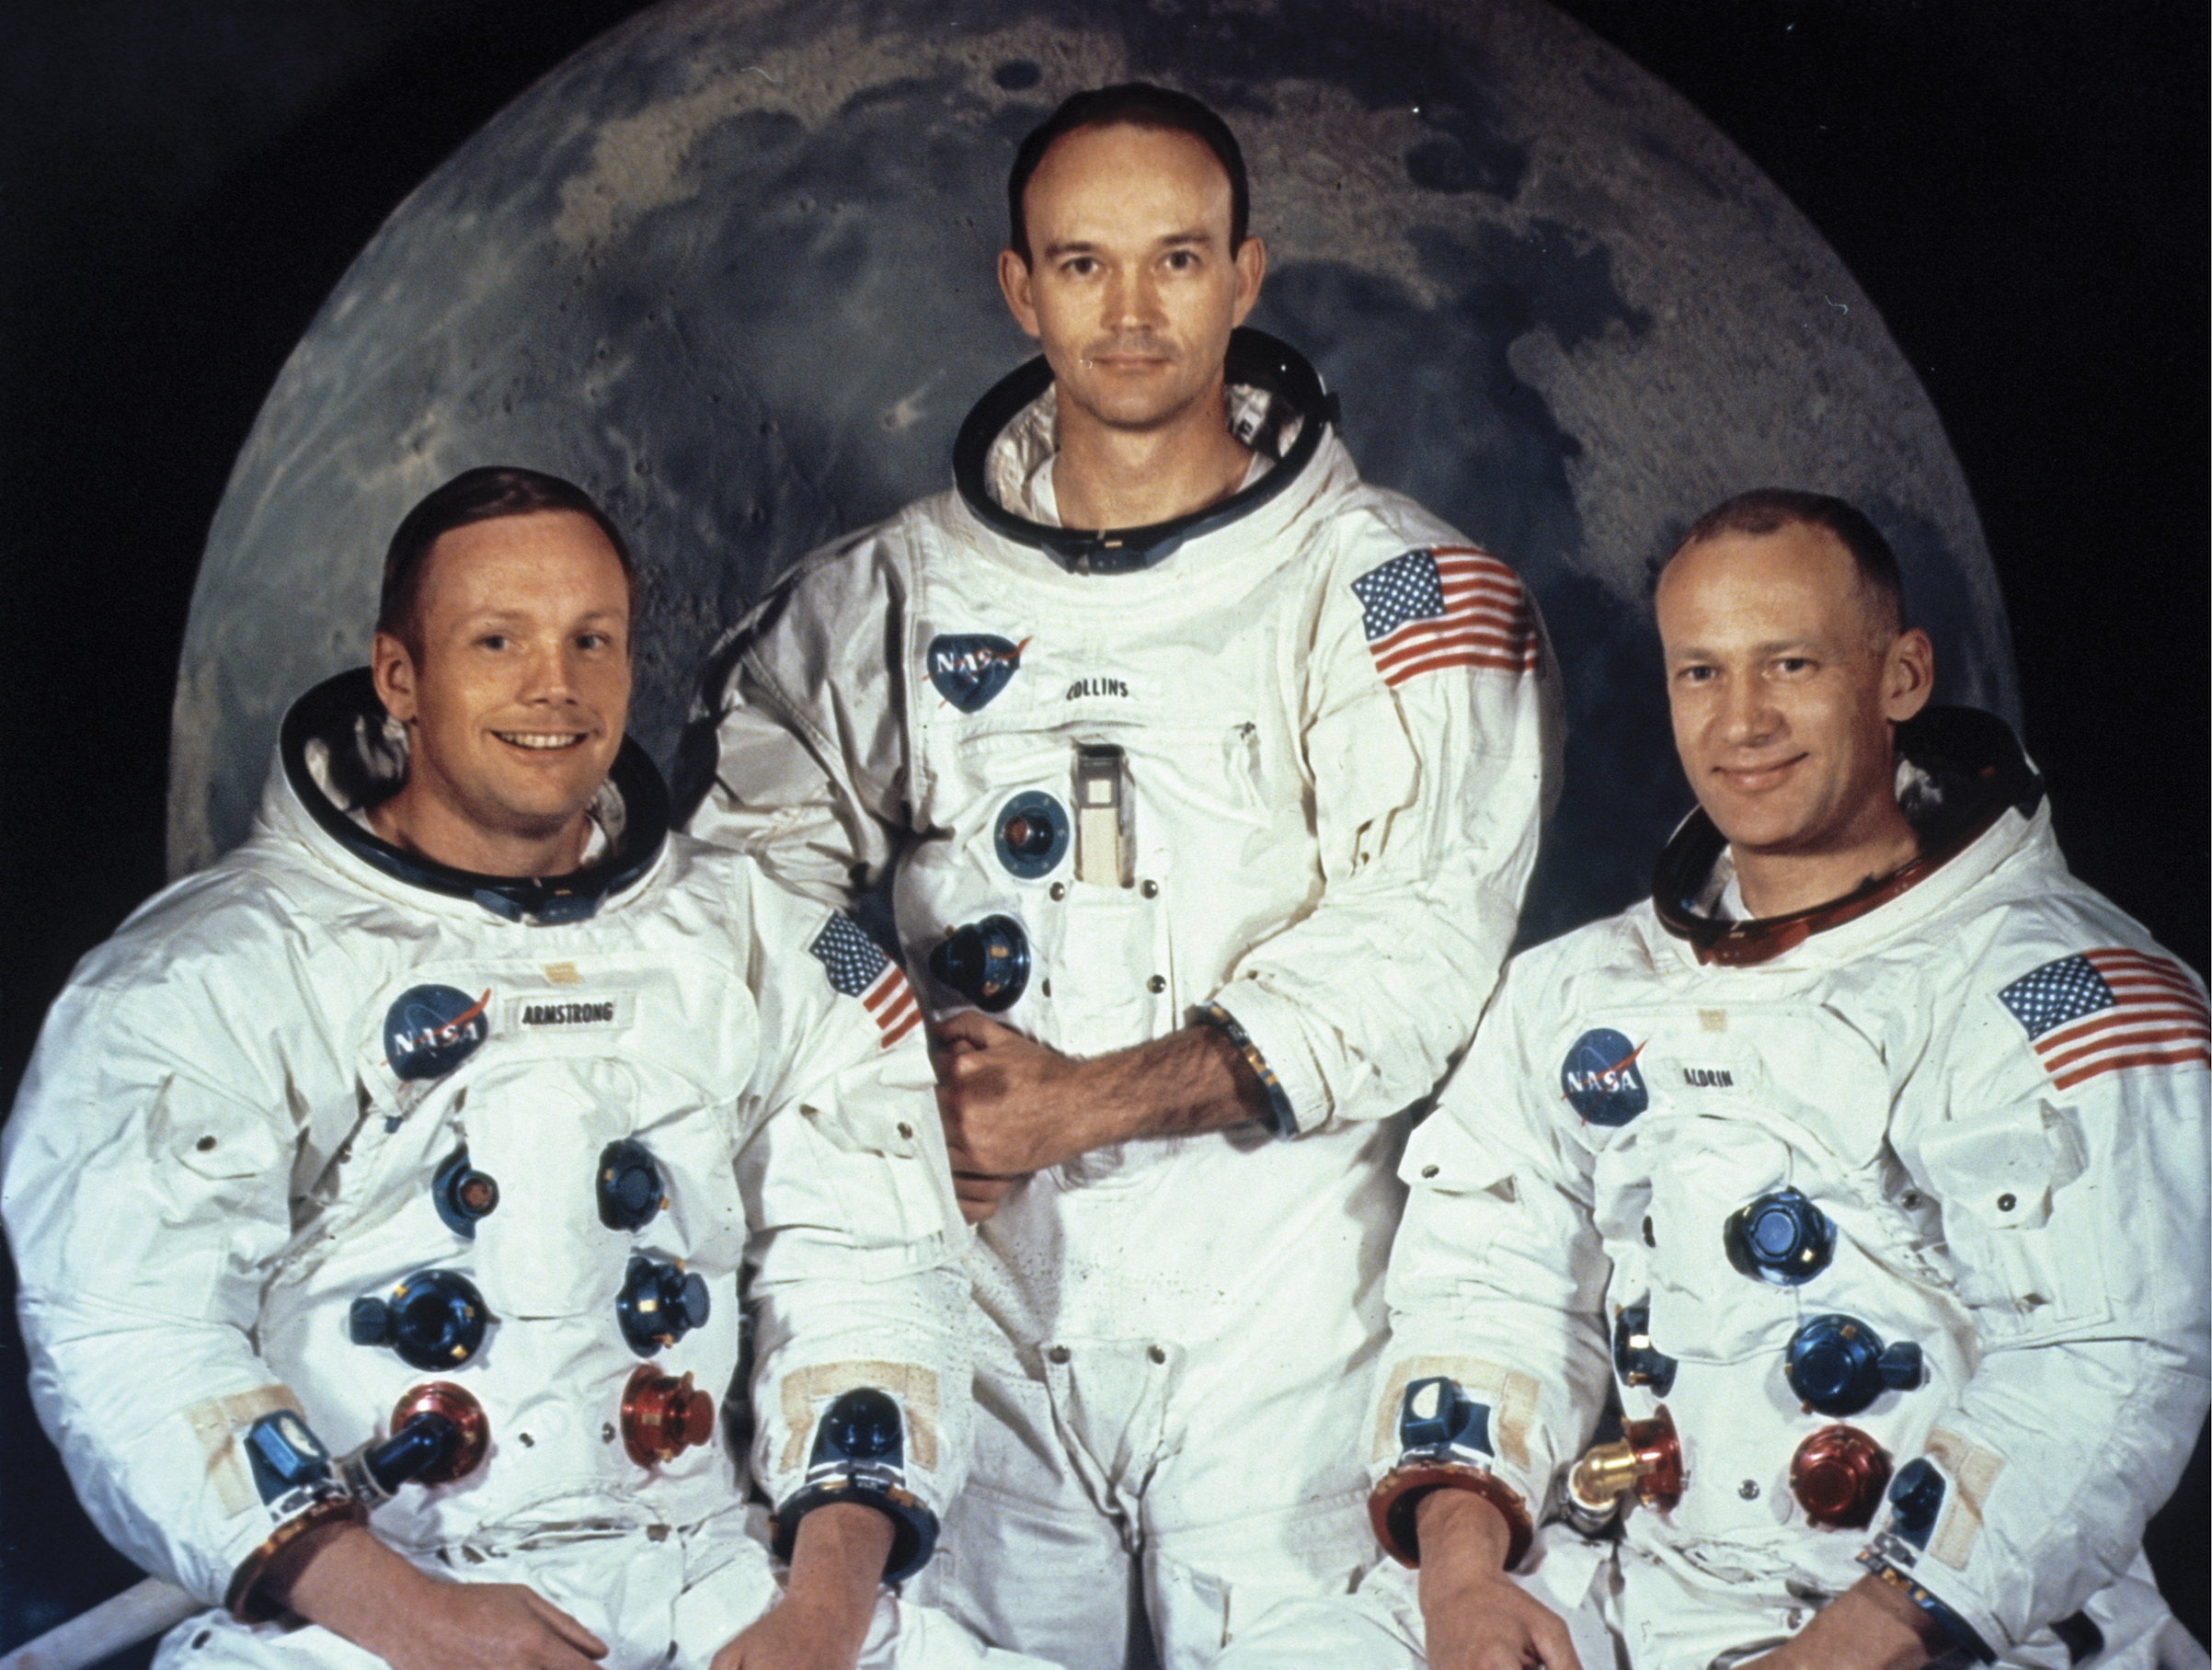 Apollo 11 astronauts Neil Armstrong, Michael Collins and Buzz Aldrin